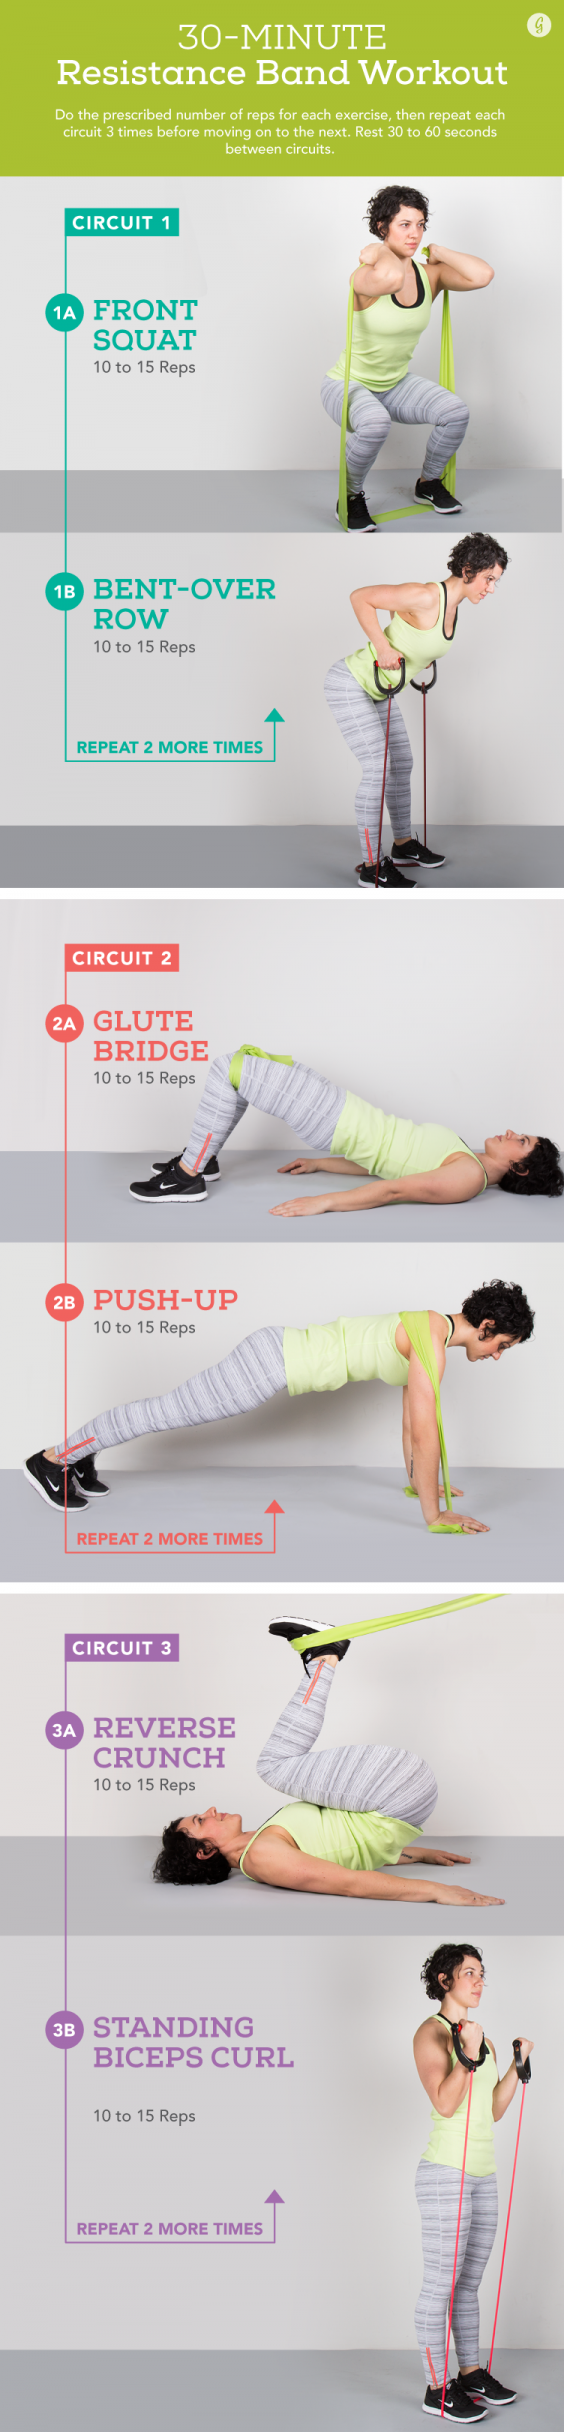 30 Minute Resistance Band Workout